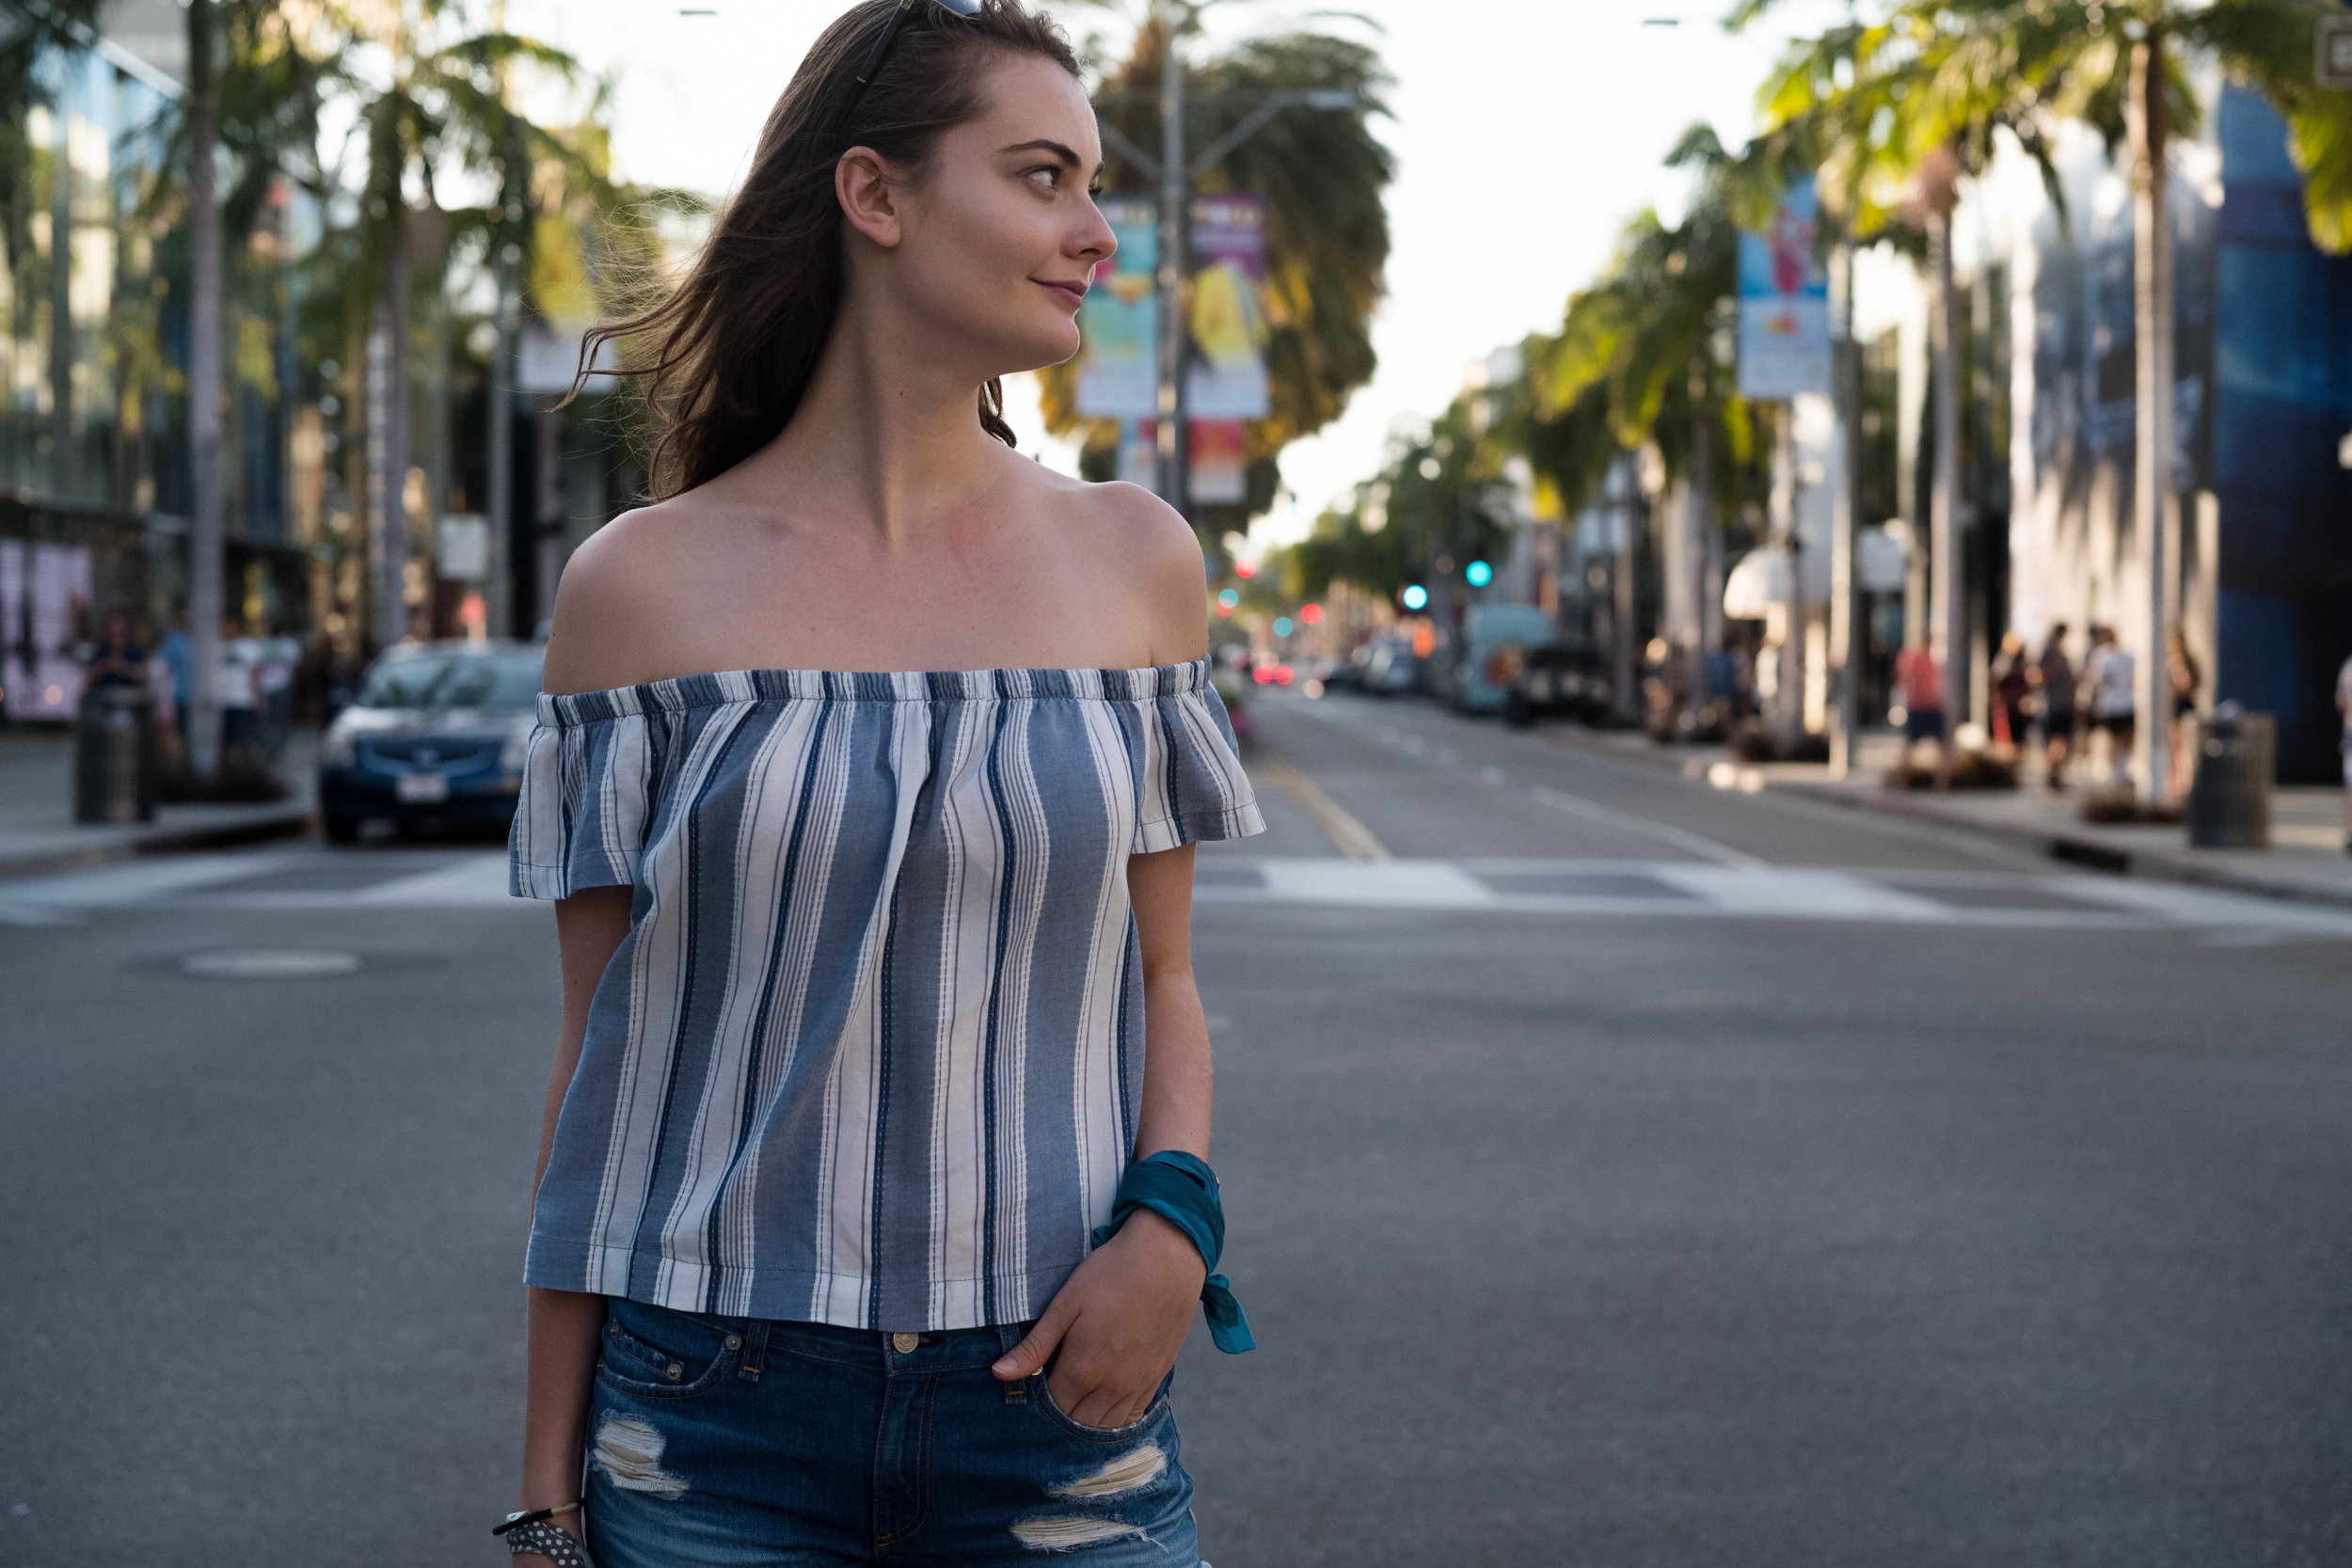 In the middle of the crosswalk on Rodeo Drive. Leica APO 50mm f/2 Summicron ASPH